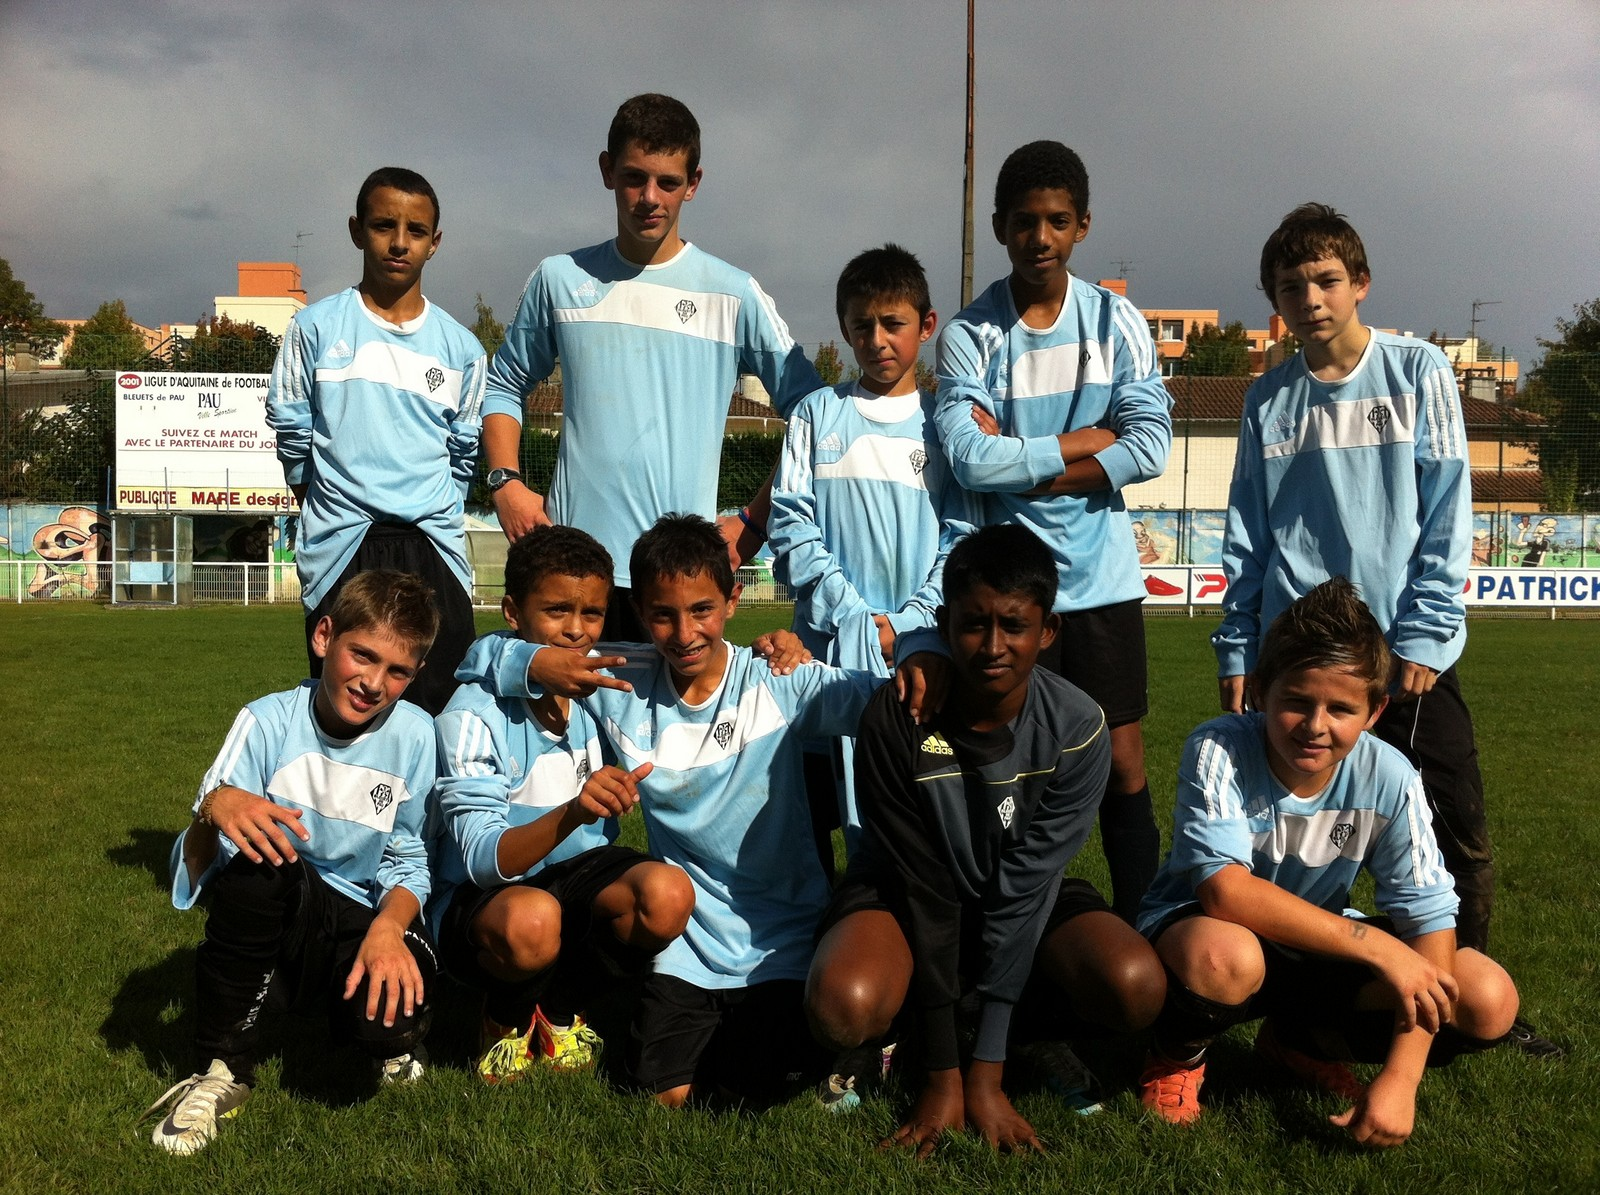 http://bleuetspau.free.fr/photos/2012/u15b_monein_oct.jpg